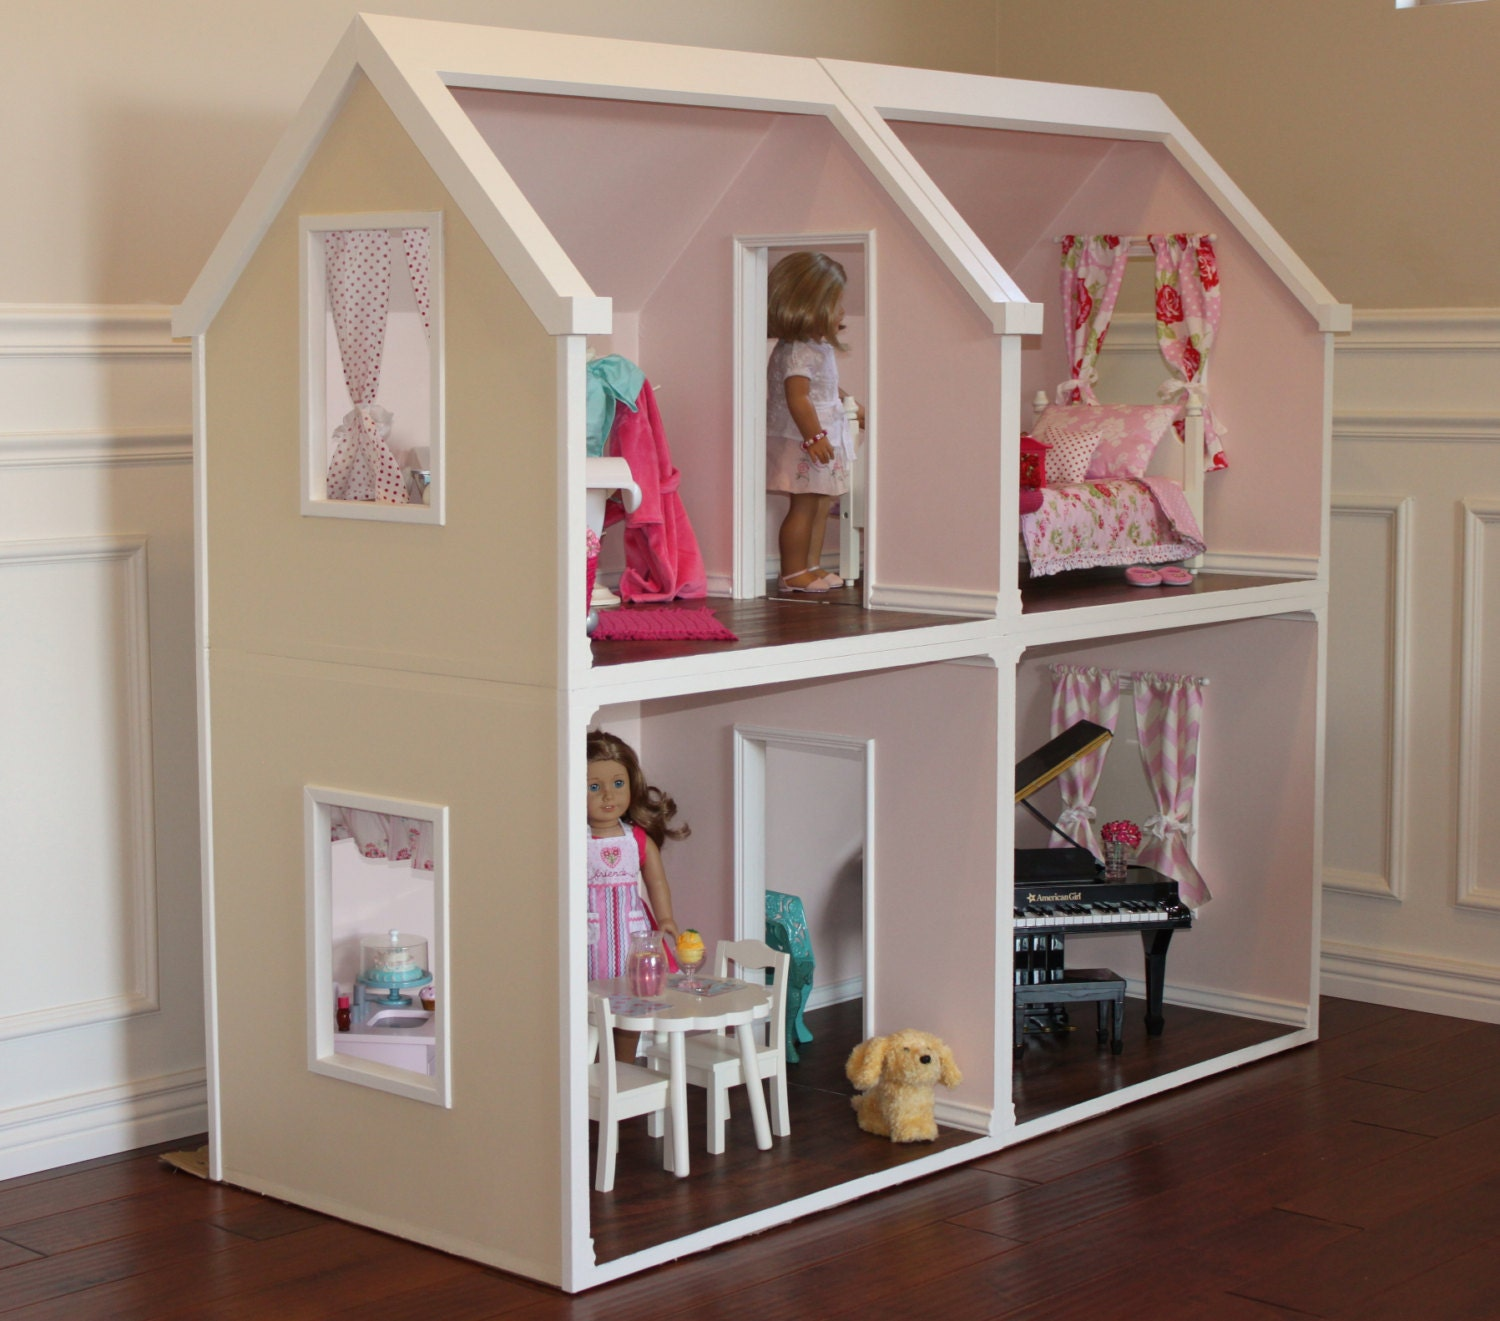 Karen Mom of Three's Craft Blog: Doll Houses For The Holidays.